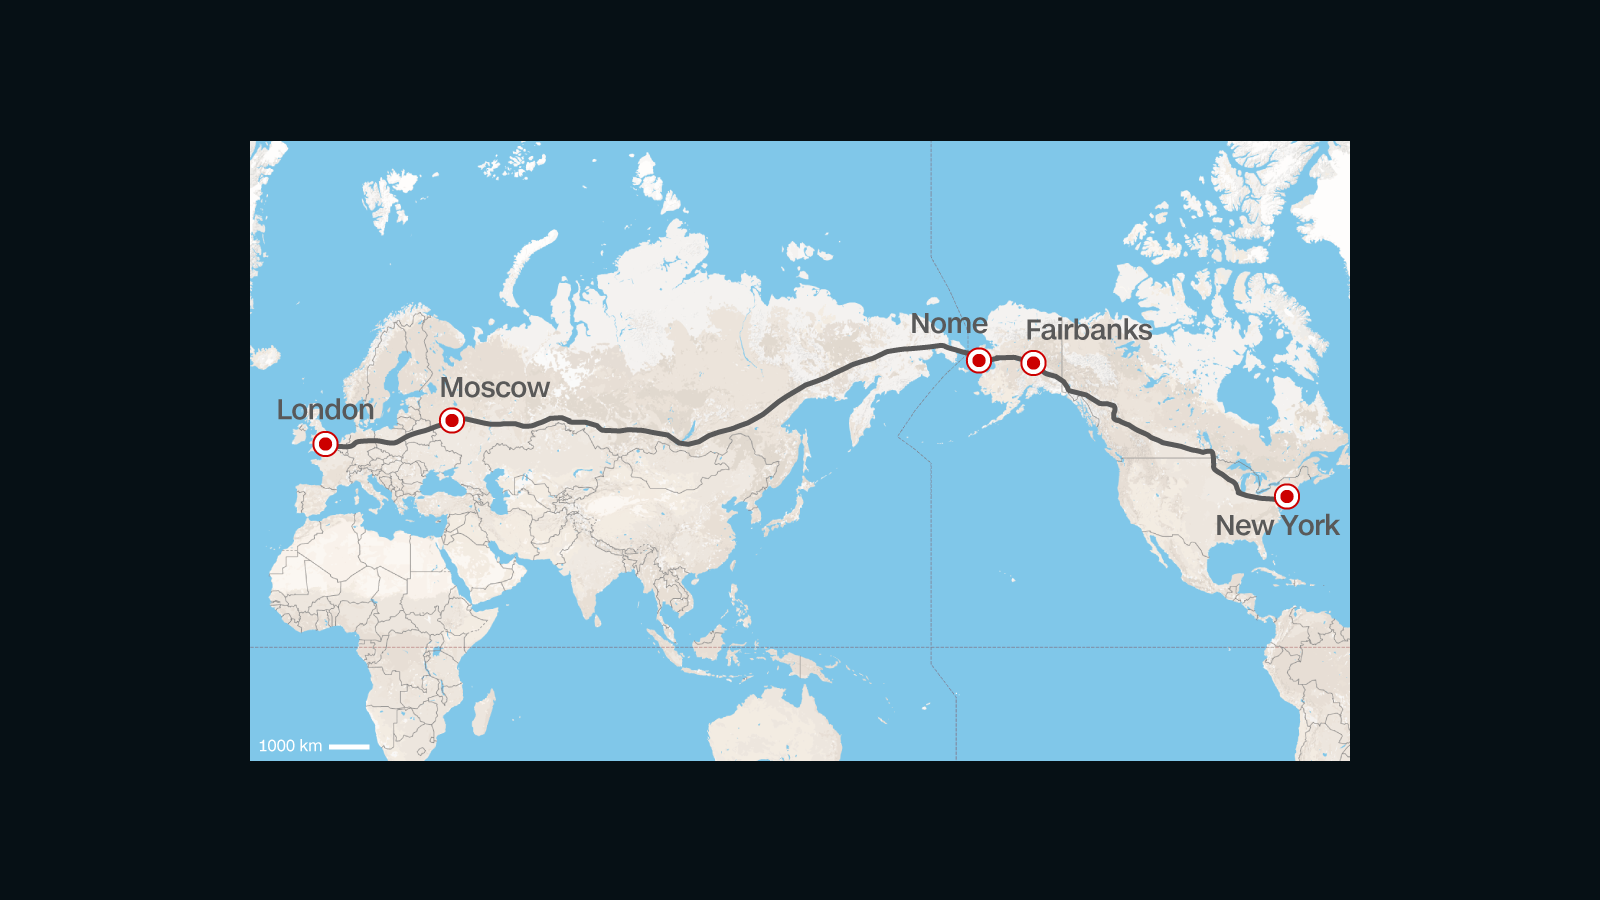 Road From Europe To US Russia Proposes Superhighway CNN Travel - Map usa states cities mileage